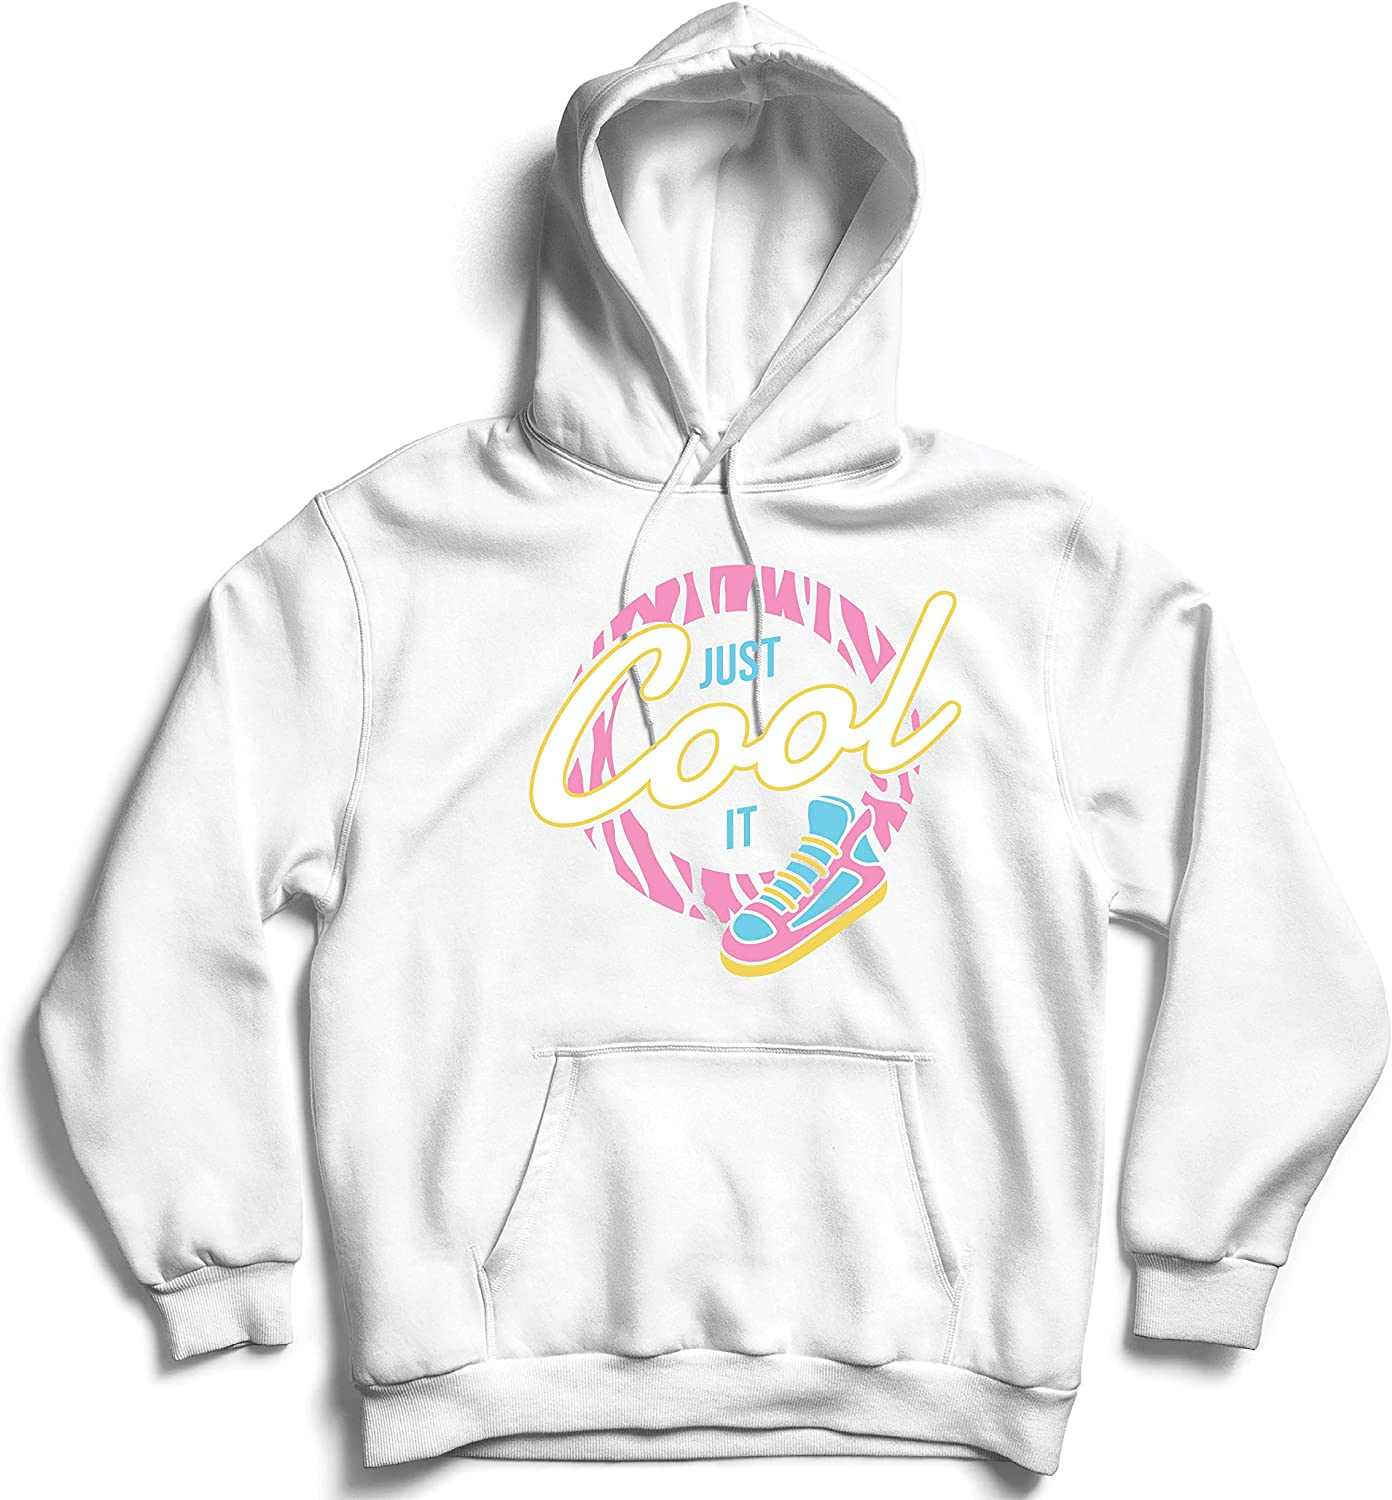 lepni.me Unisex Hoodie Retro Just Cool it Back to 80s 90s 00s Pop Culture